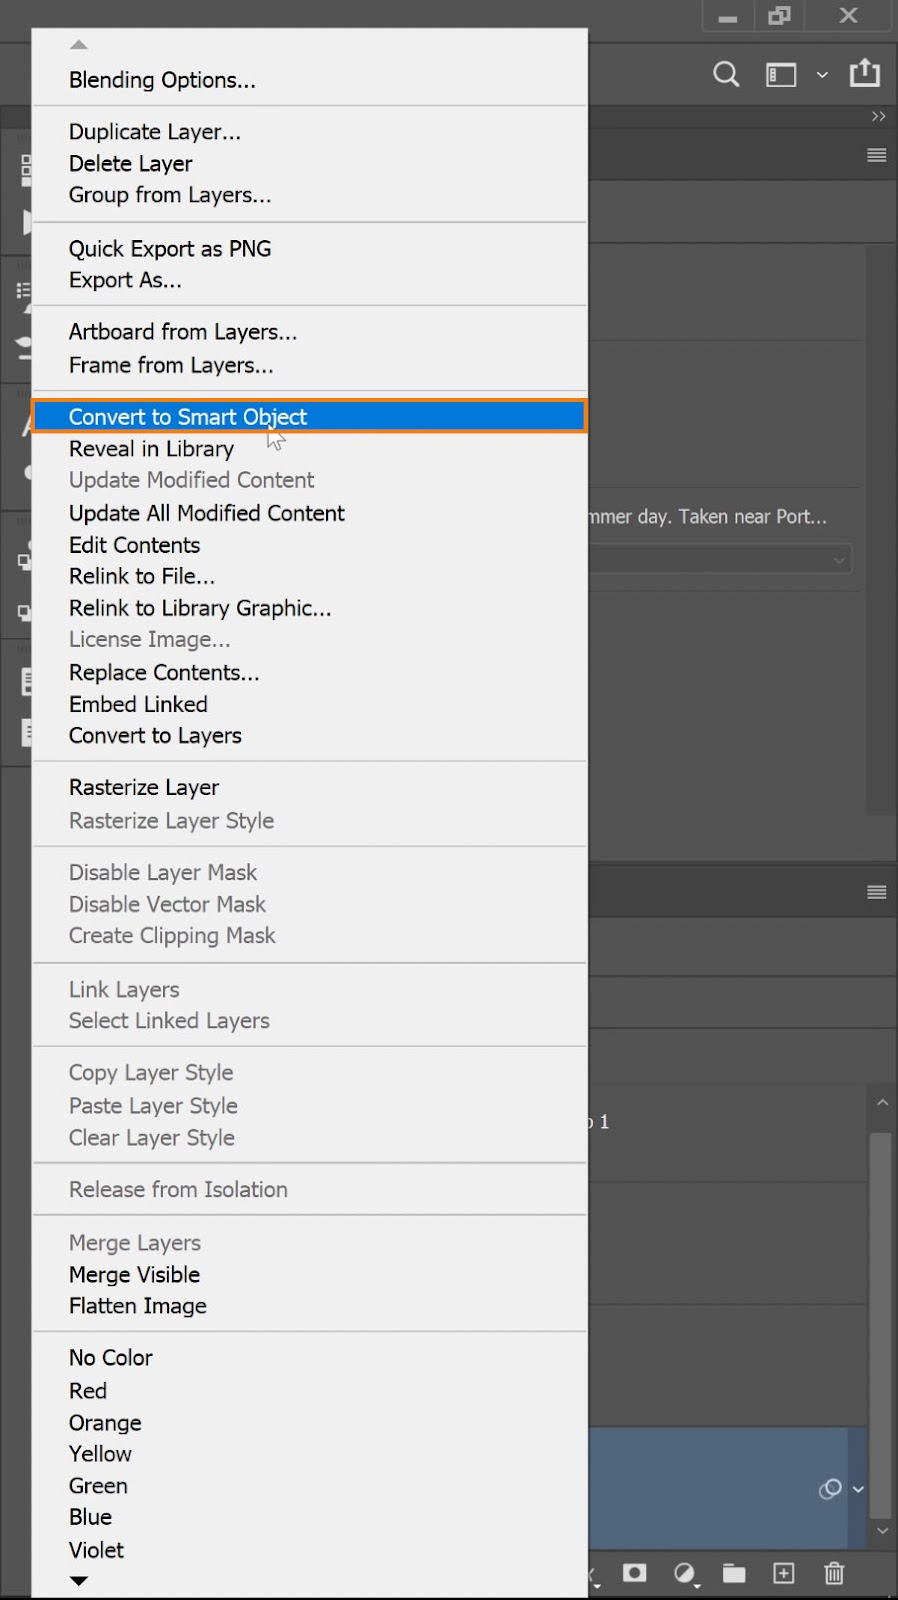 Select the Background layer > right-click > Convert to Smart Object